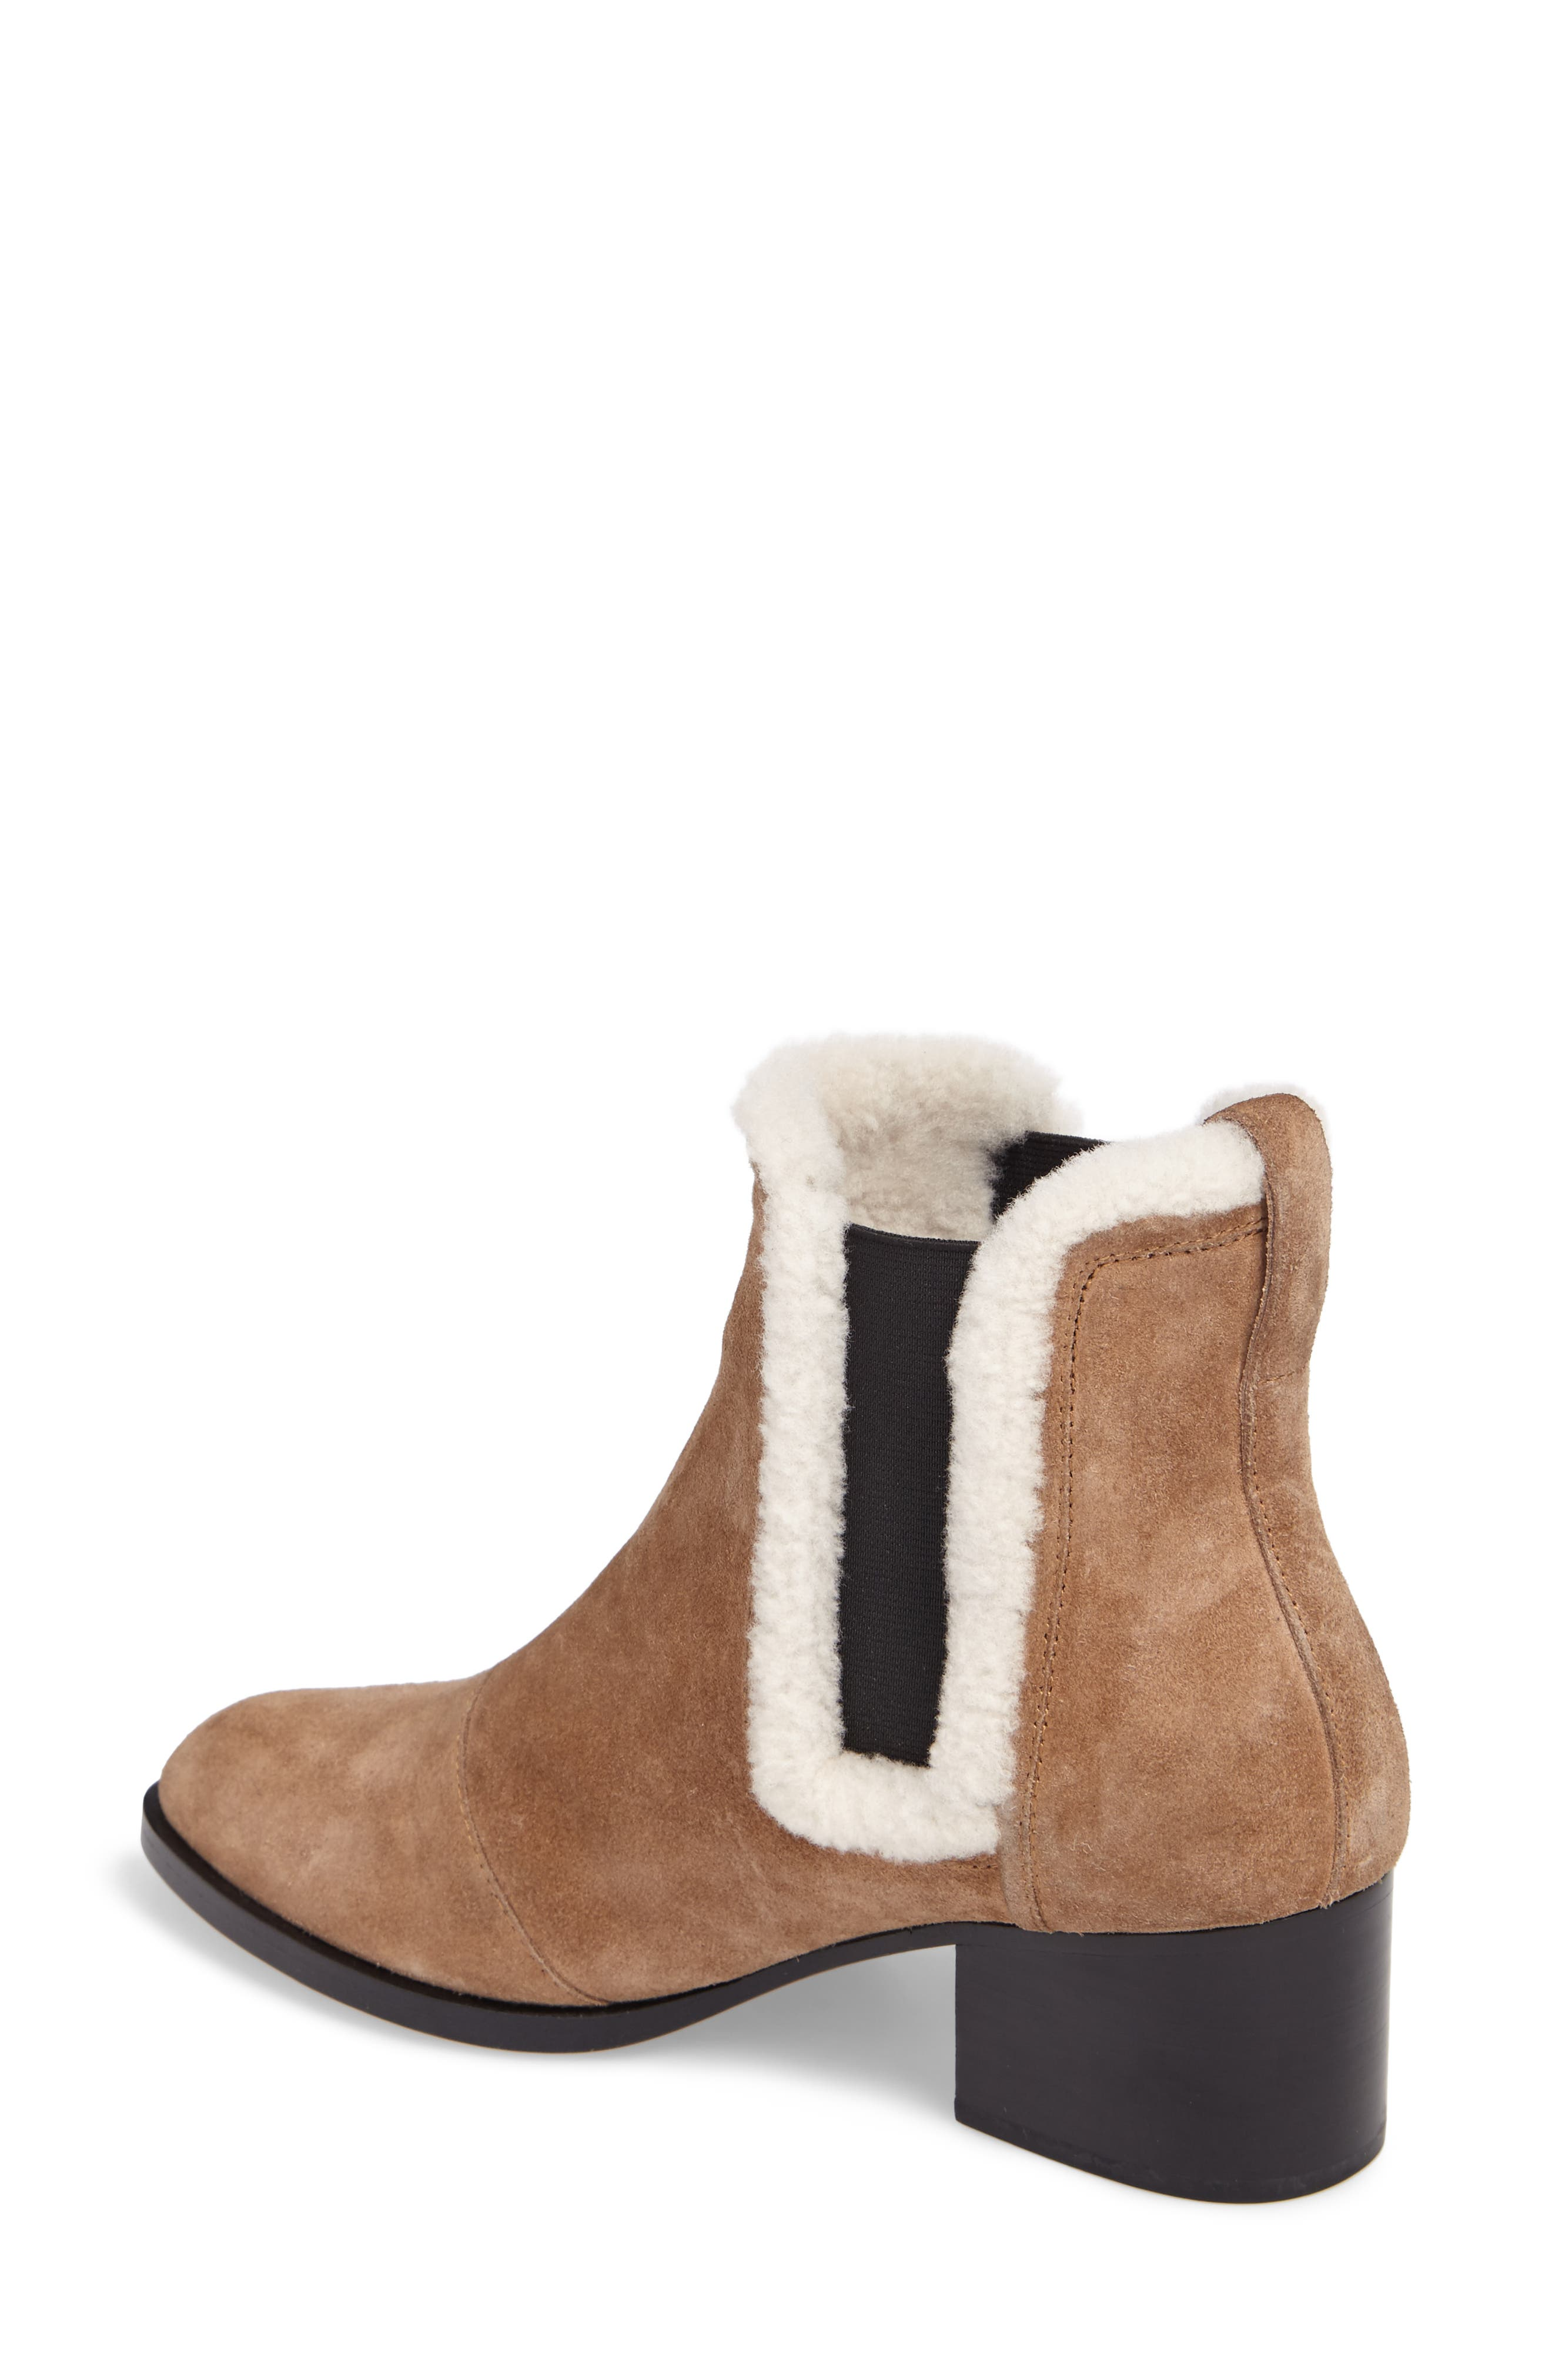 Walker Bootie with Genuine Shearling Trim,                             Alternate thumbnail 2, color,                             227